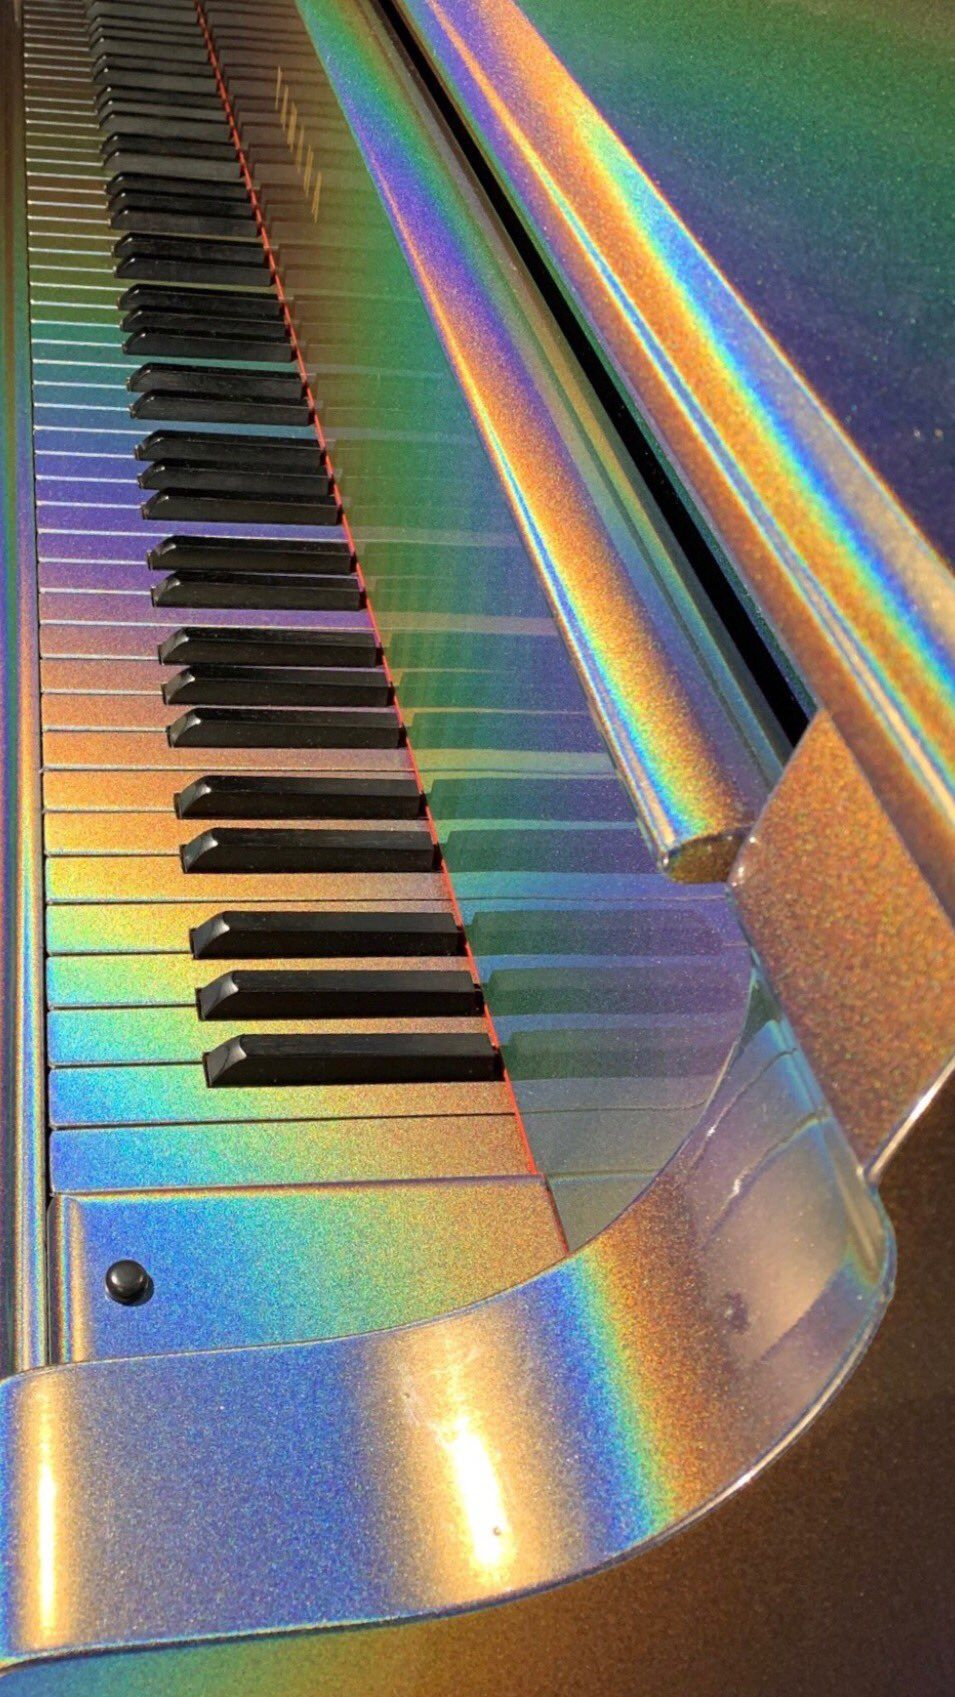 Pin By Ruth Ulrich On Dreams Piano Art Music Wallpaper Aesthetic Wallpapers